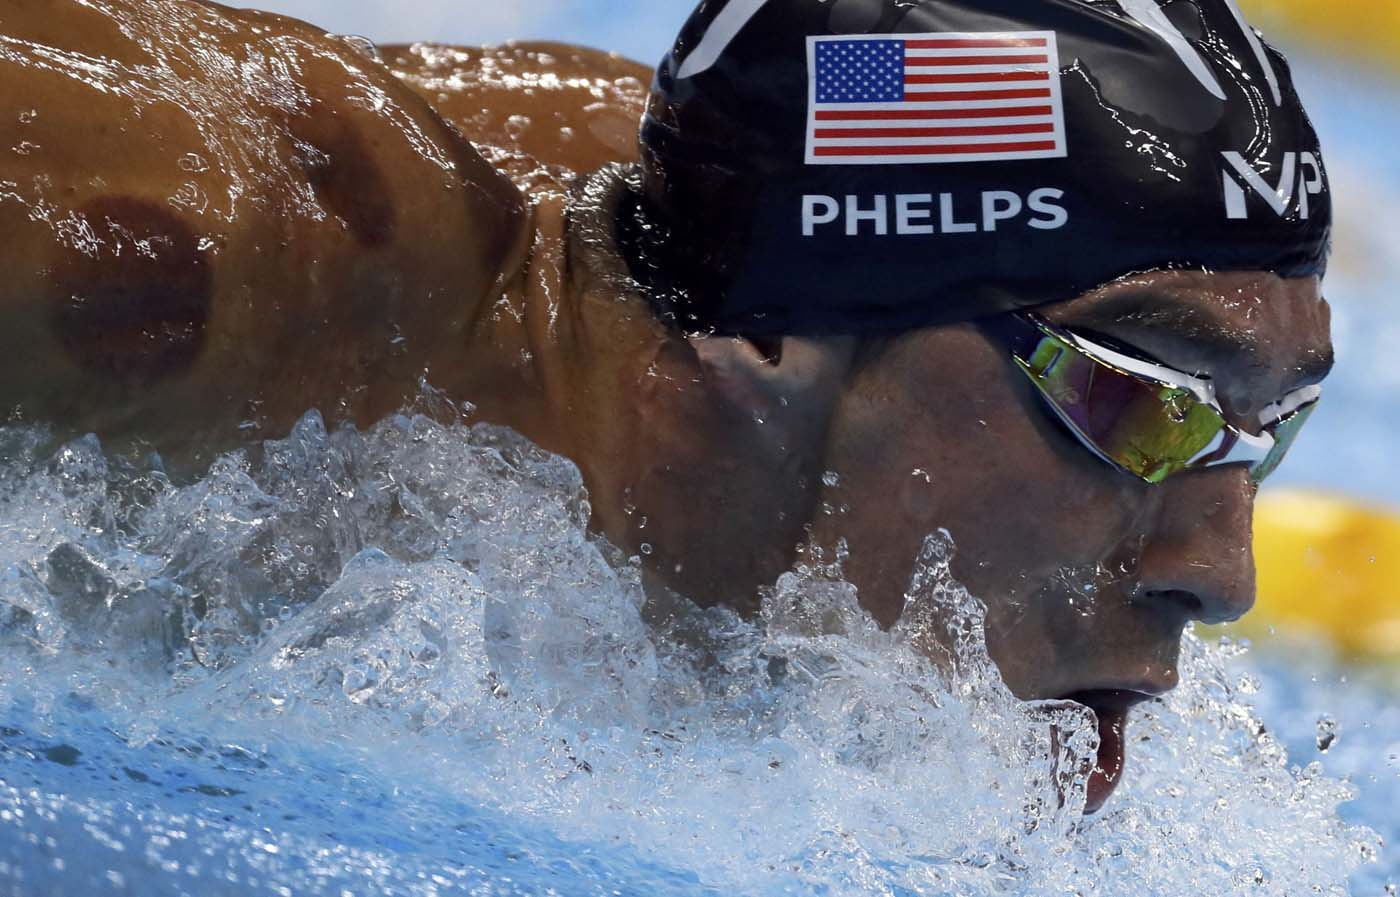 2016 Rio Olympics - Swimming - Final - Men's 200m Butterfly Semifinals - Olympic Aquatics Stadium - Rio de Janeiro, Brazil - 08/08/2016. Michael Phelps (USA) of USA competes. REUTERS/Stefan Wermuth FOR EDITORIAL USE ONLY. NOT FOR SALE FOR MARKETING OR ADVERTISING CAMPAIGNS.